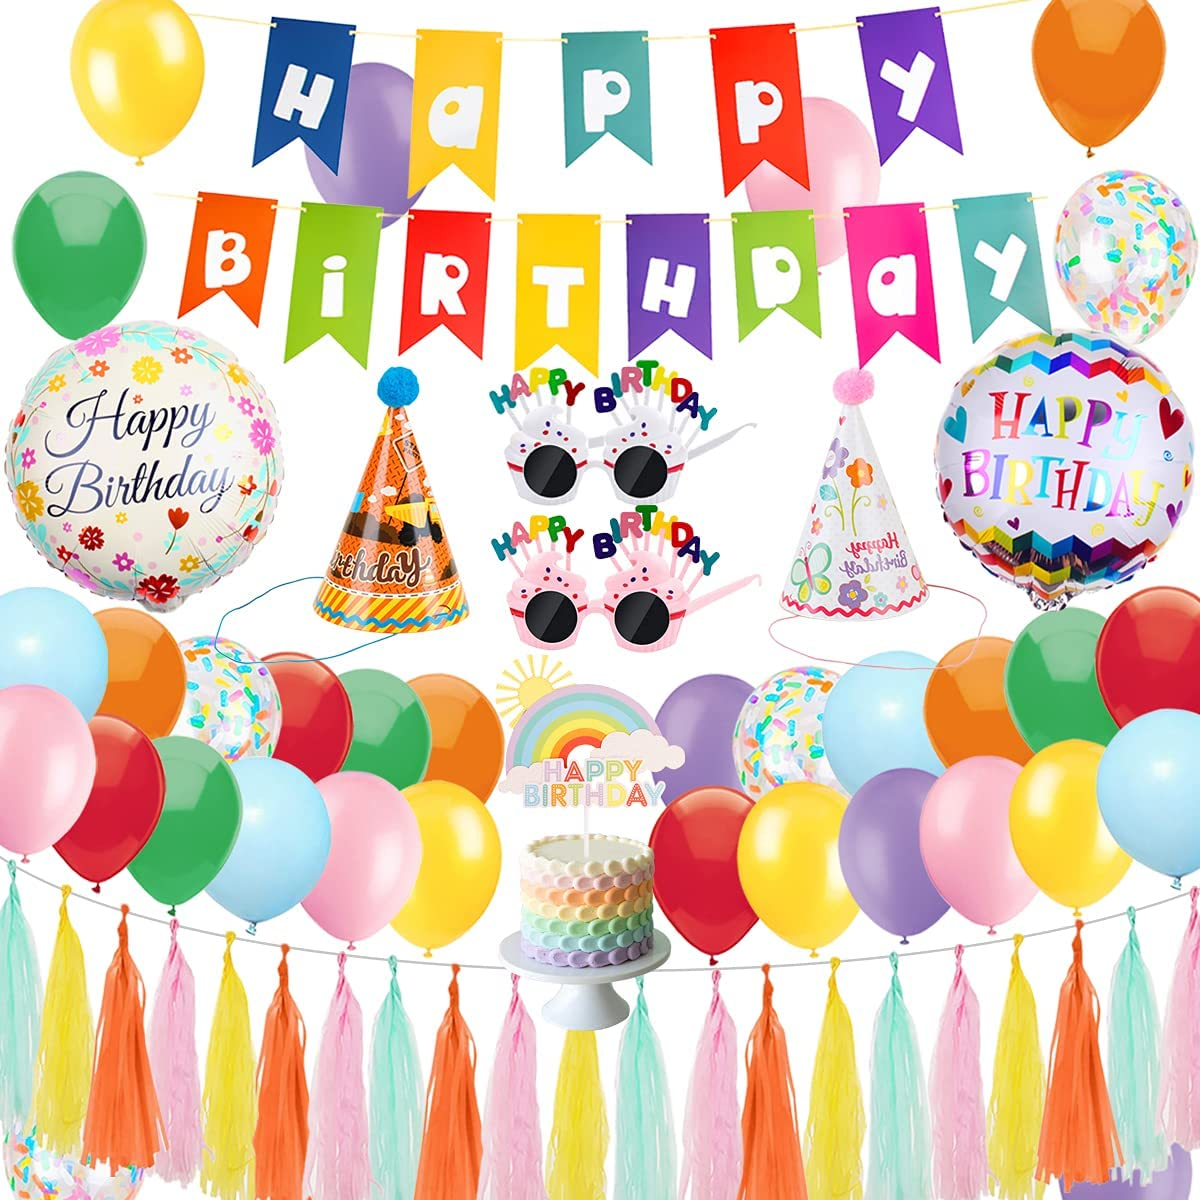 Colorful Birthday Decorations Some reservation Rainbow Wome Columbus Mall Party for